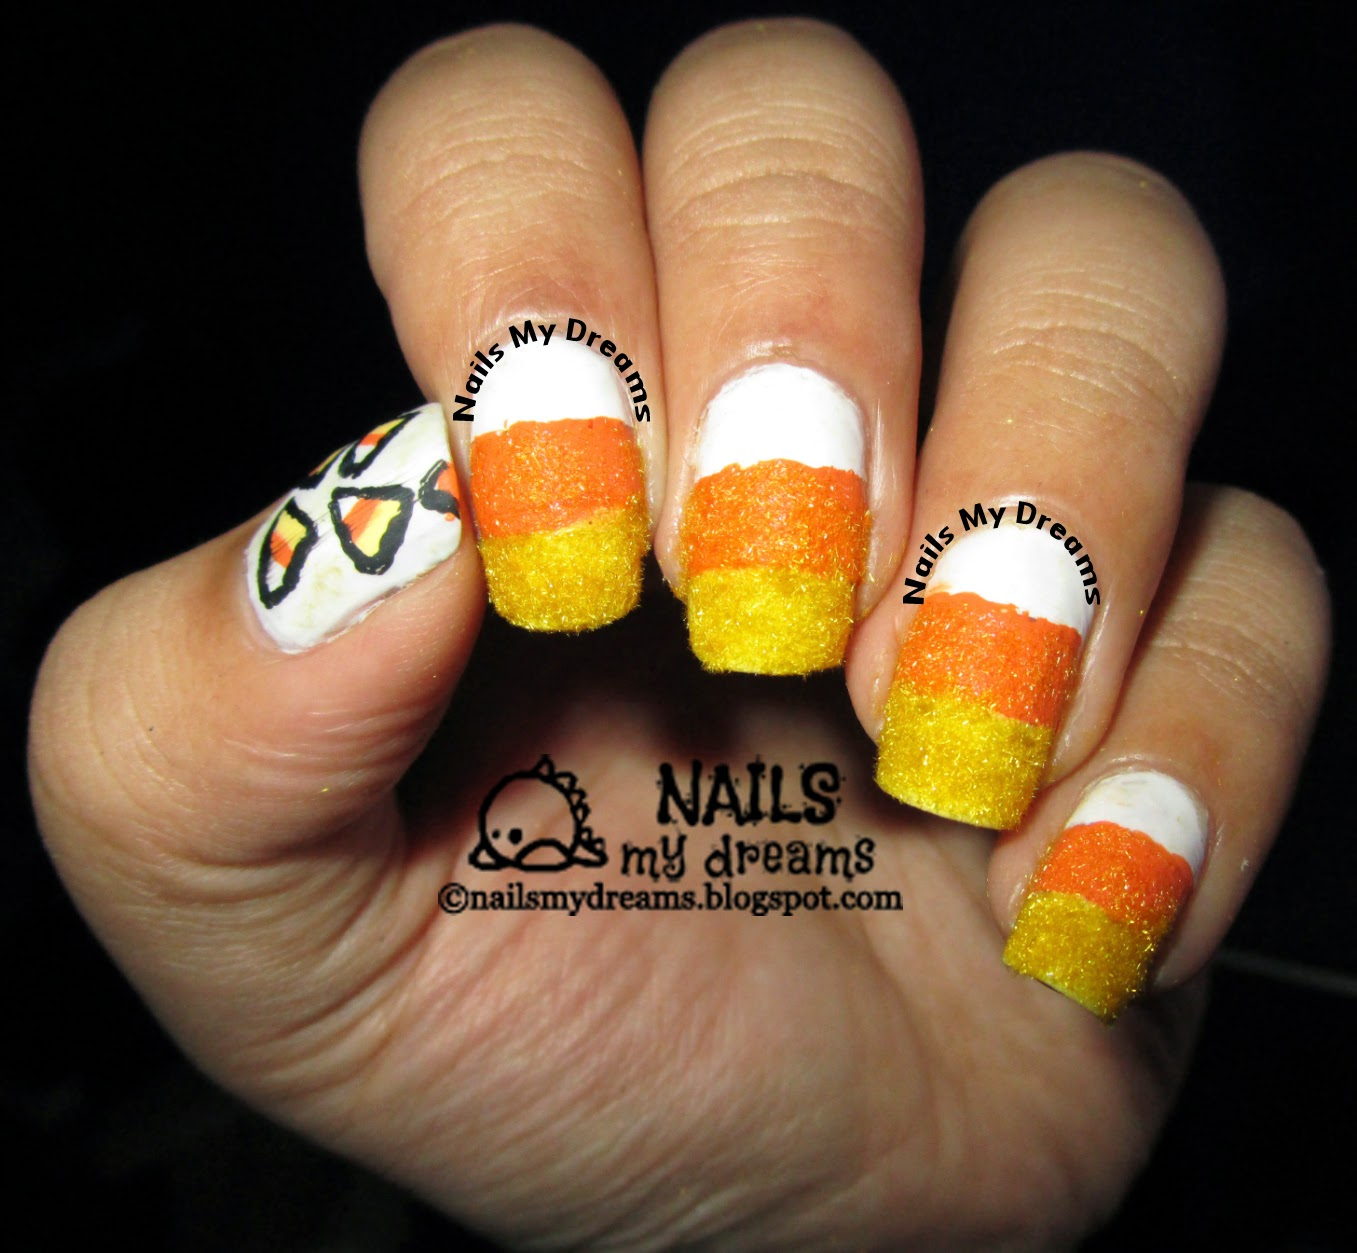 candy corn nail art textured with flocking powder